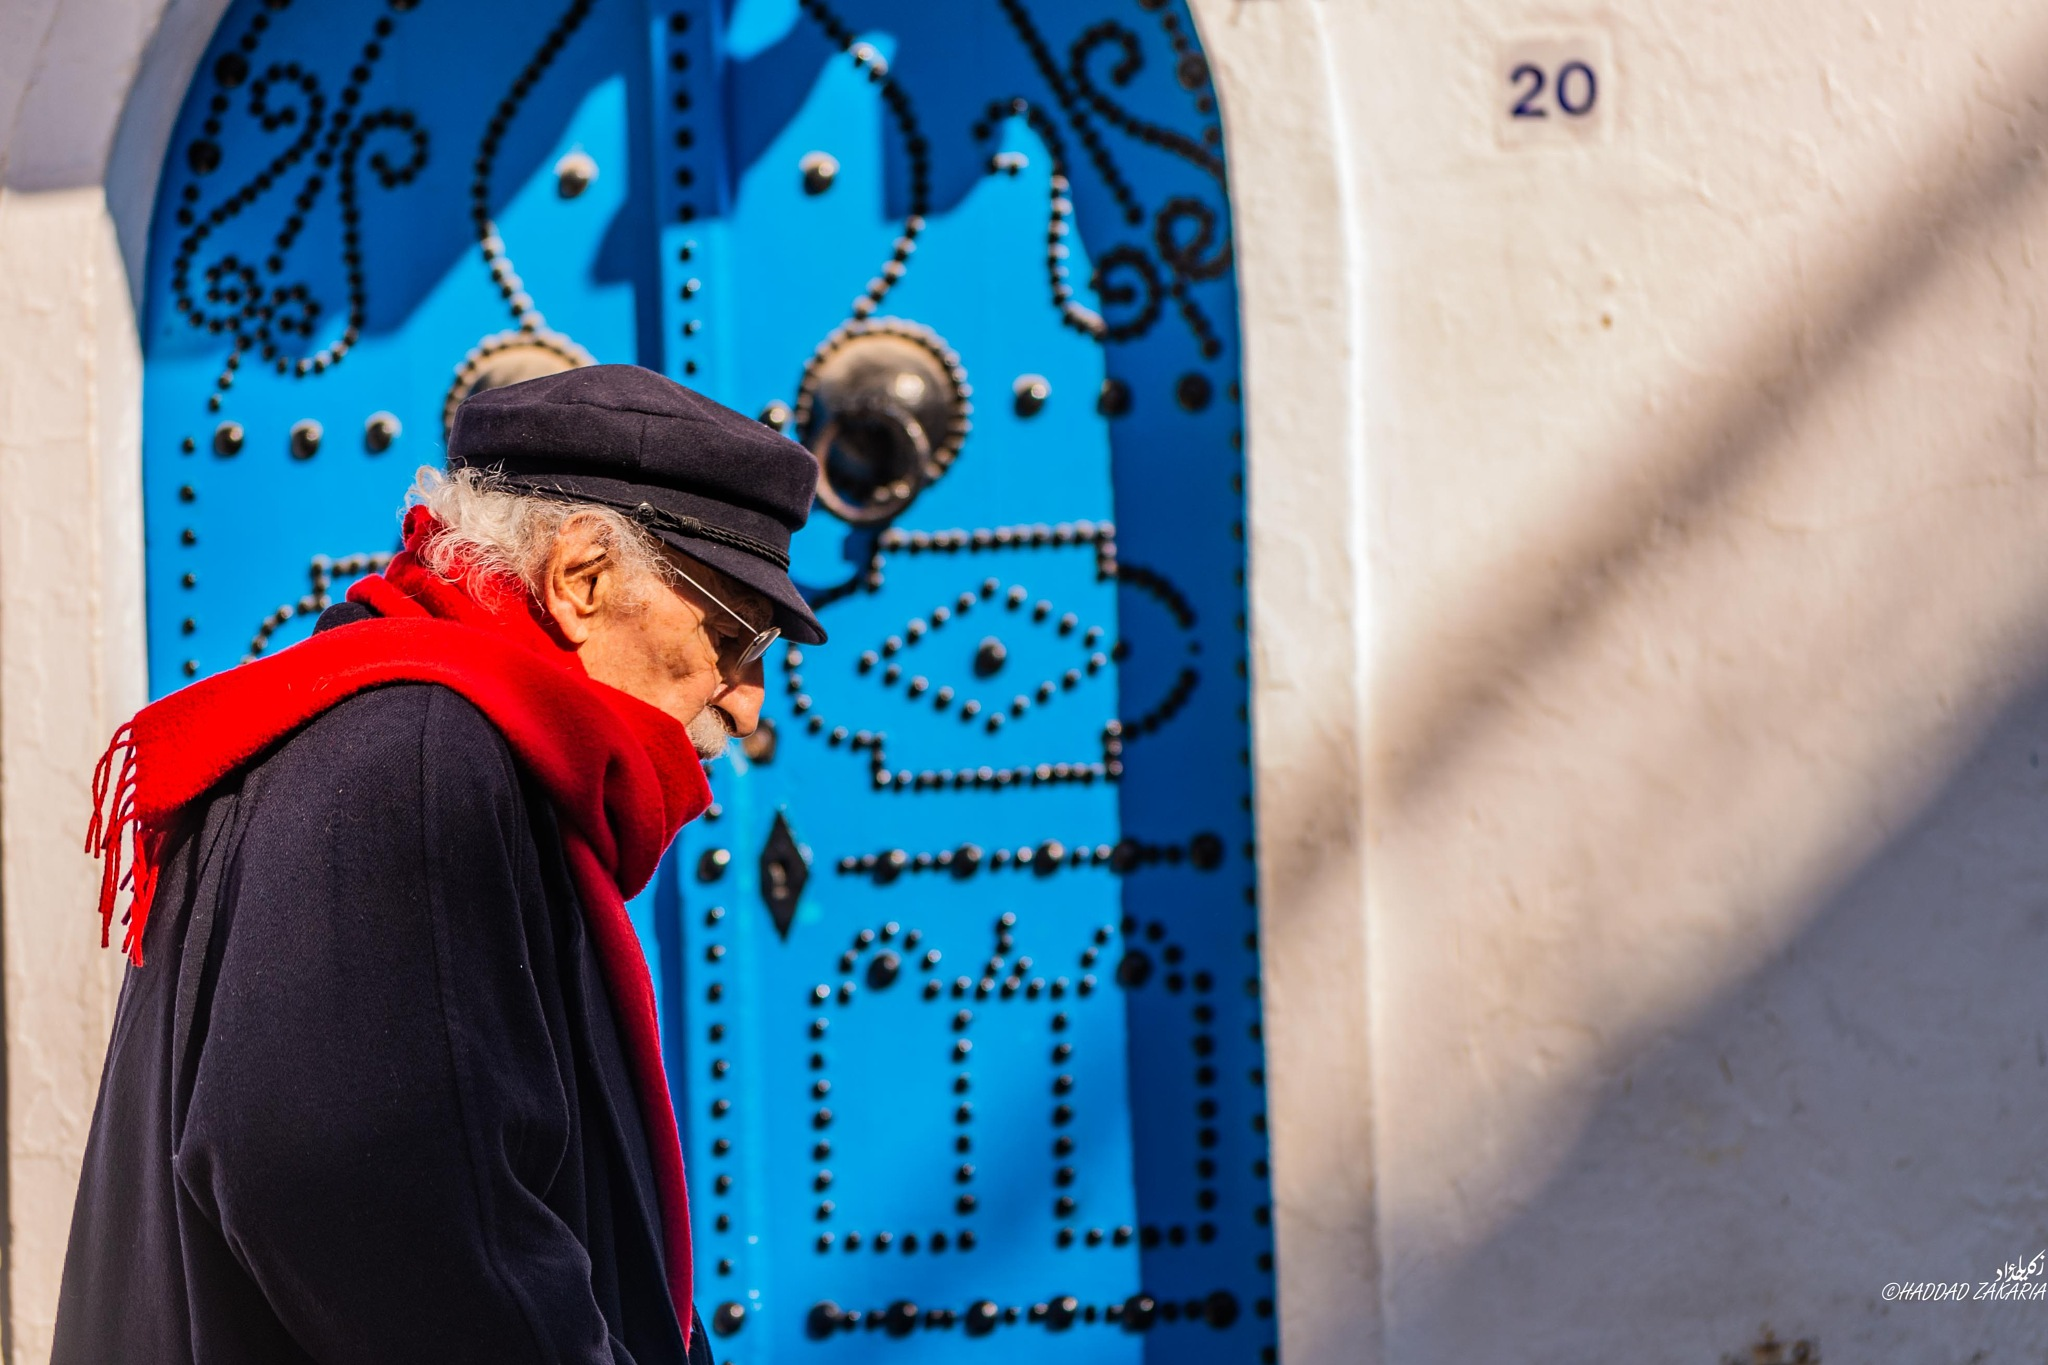 The red scarf by Zakaria Haddad